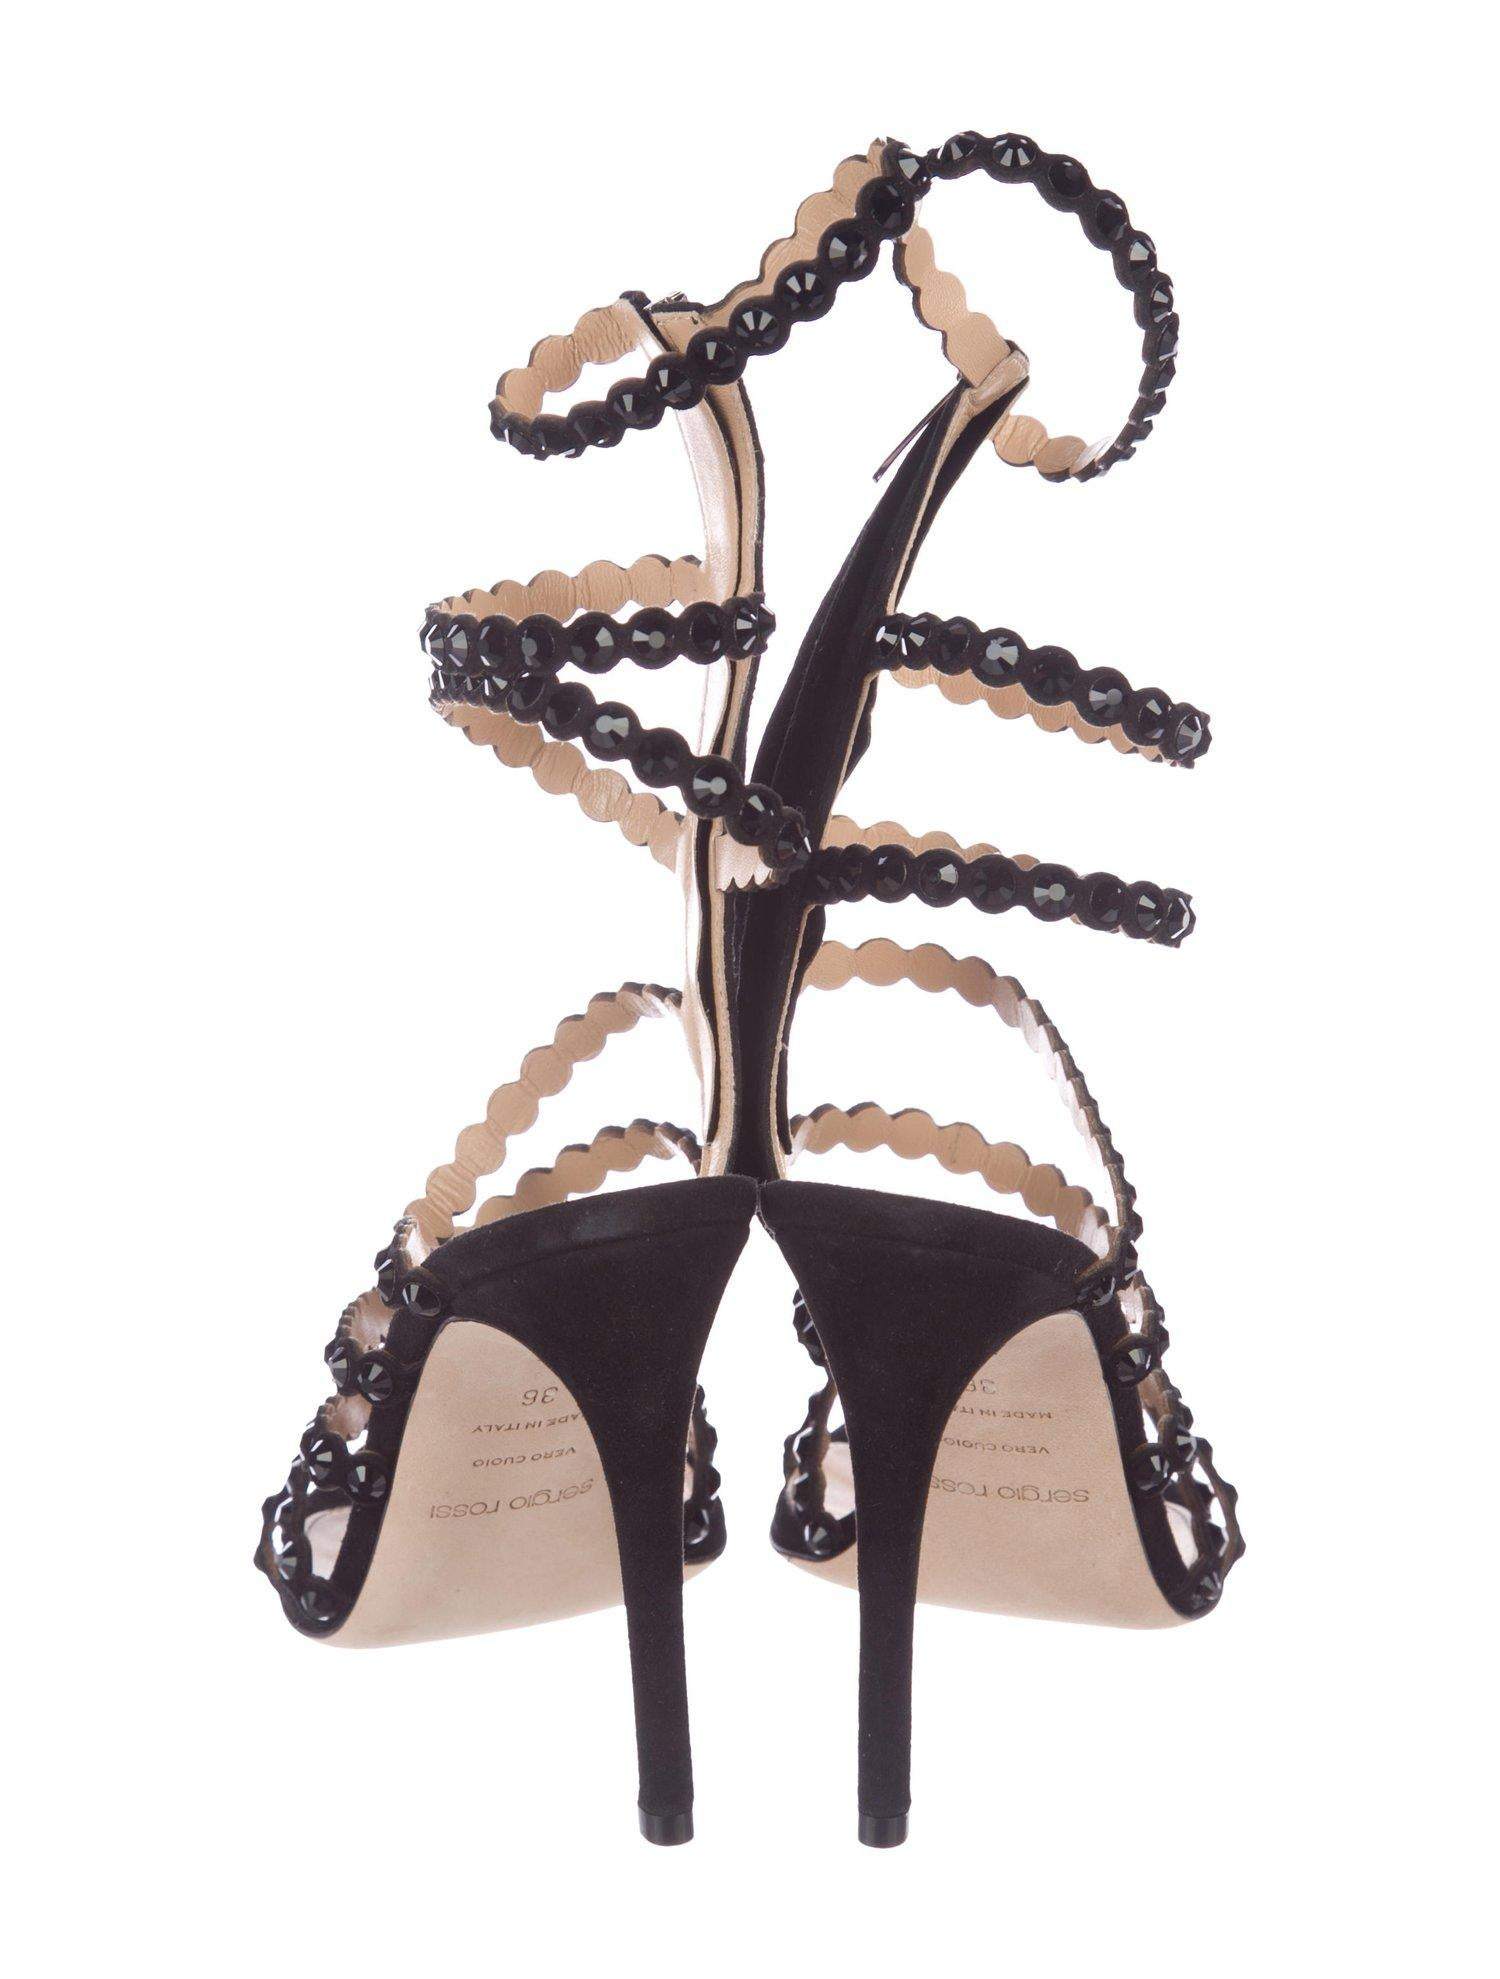 f1c47f42a2 GIANVITO ROSSI NEW Black Leather Crystal Gladiator Strappy Sandals Heels in  Box For Sale at 1stdibs